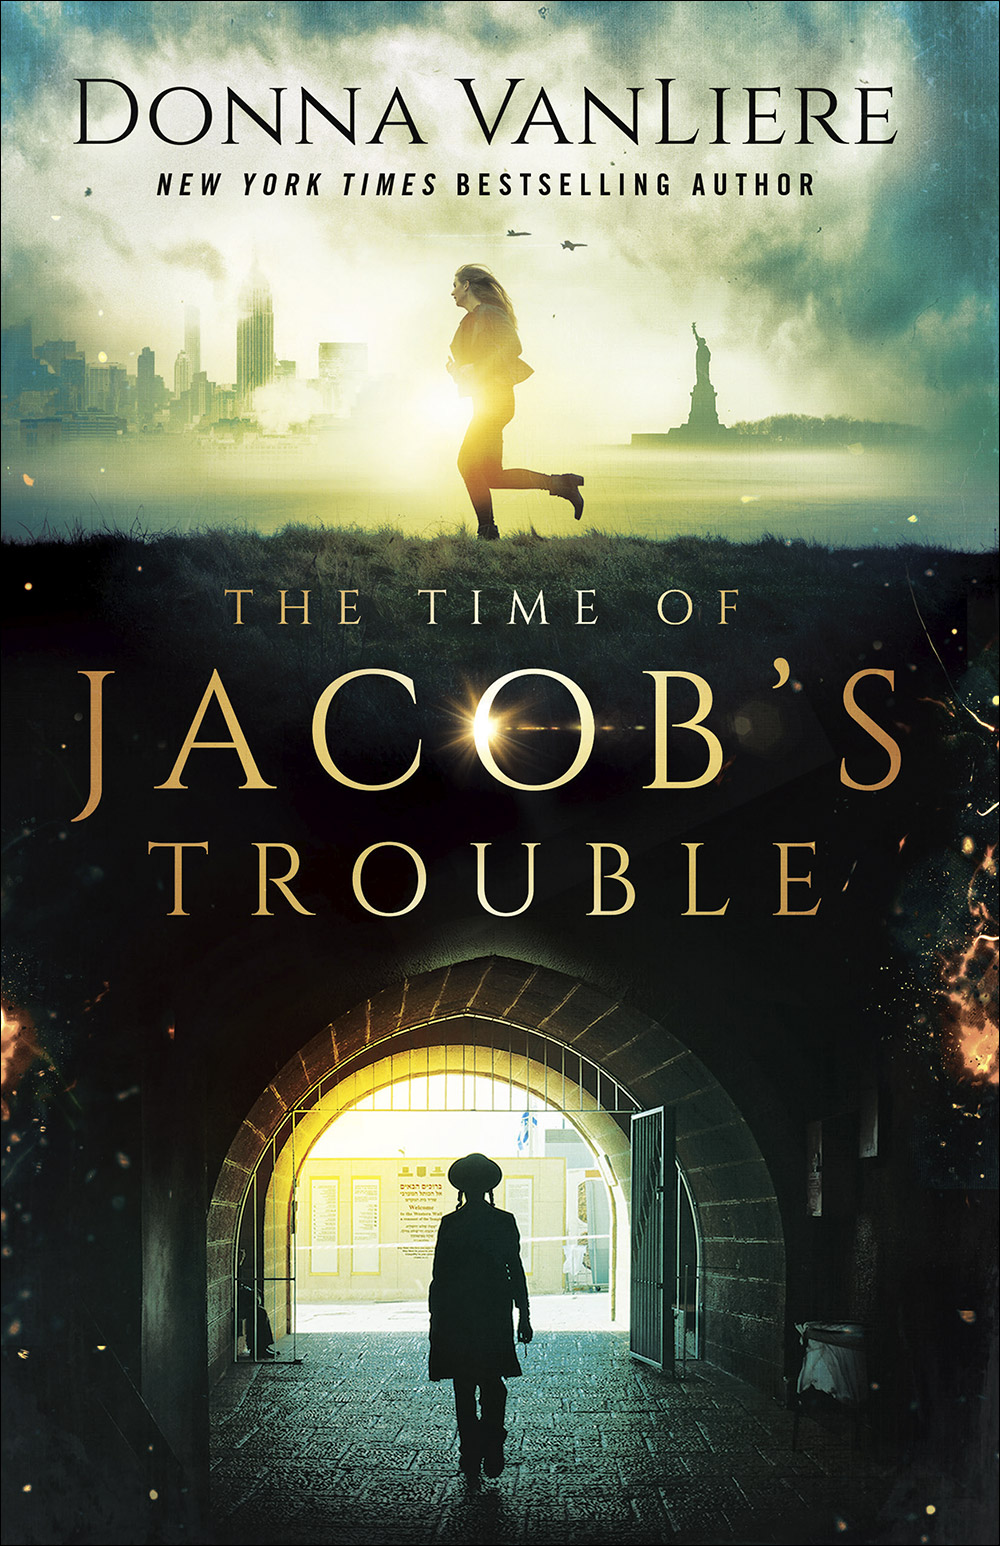 The Time of Jacob's Trouble - Donna VanLiere